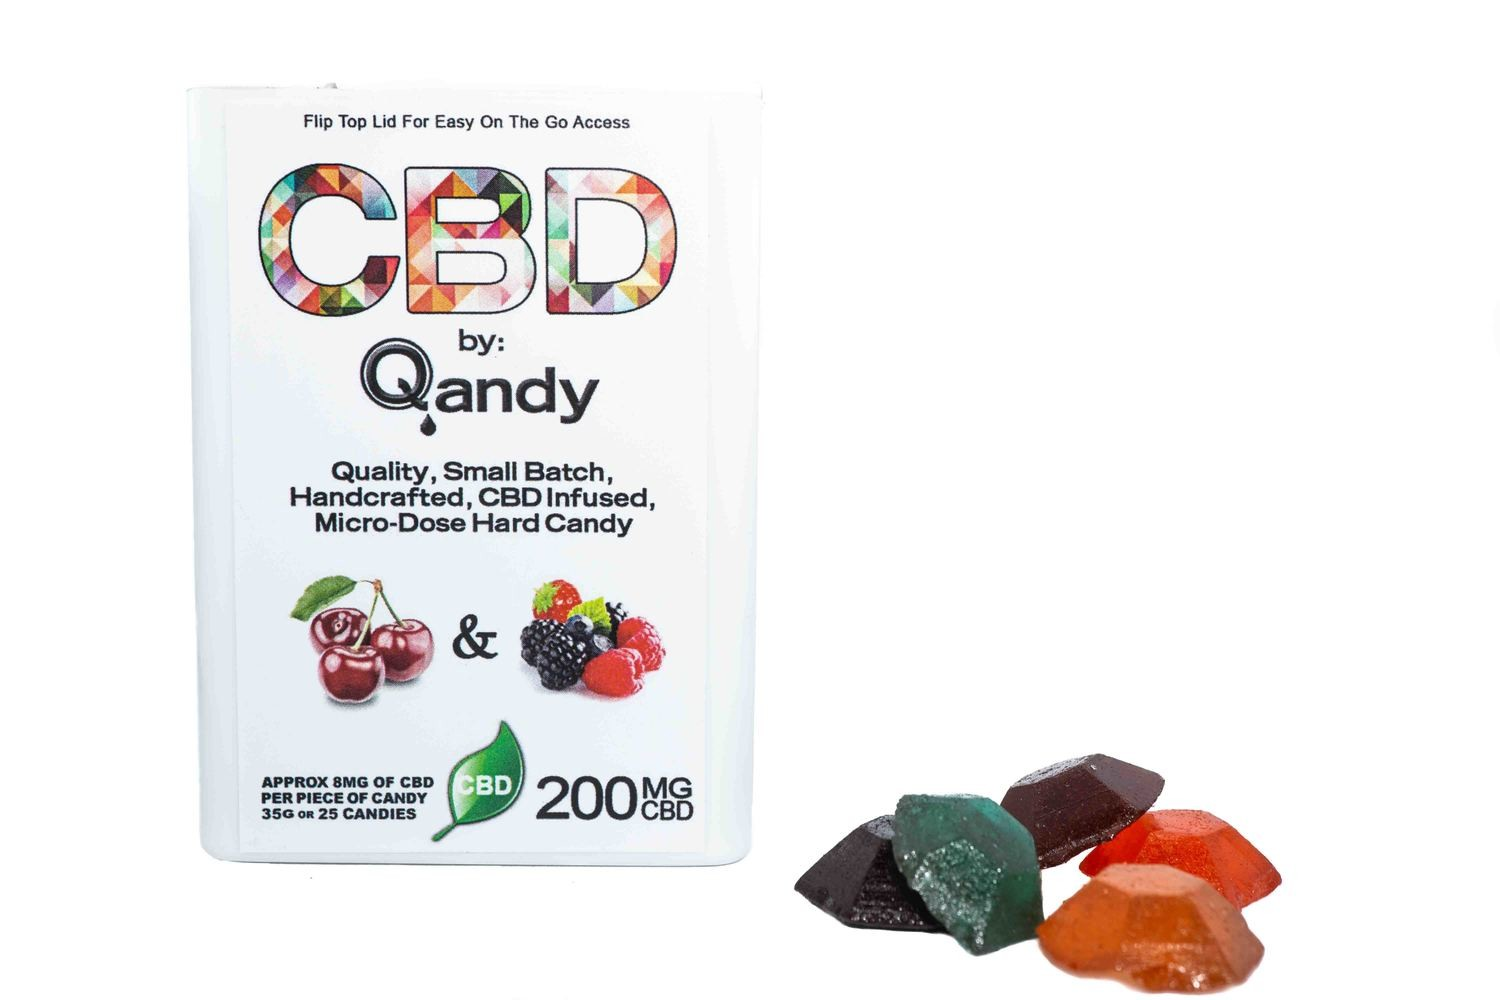 (200mg CBD) Cherries & Berries By Qandy (Vegan/Gluten Free)